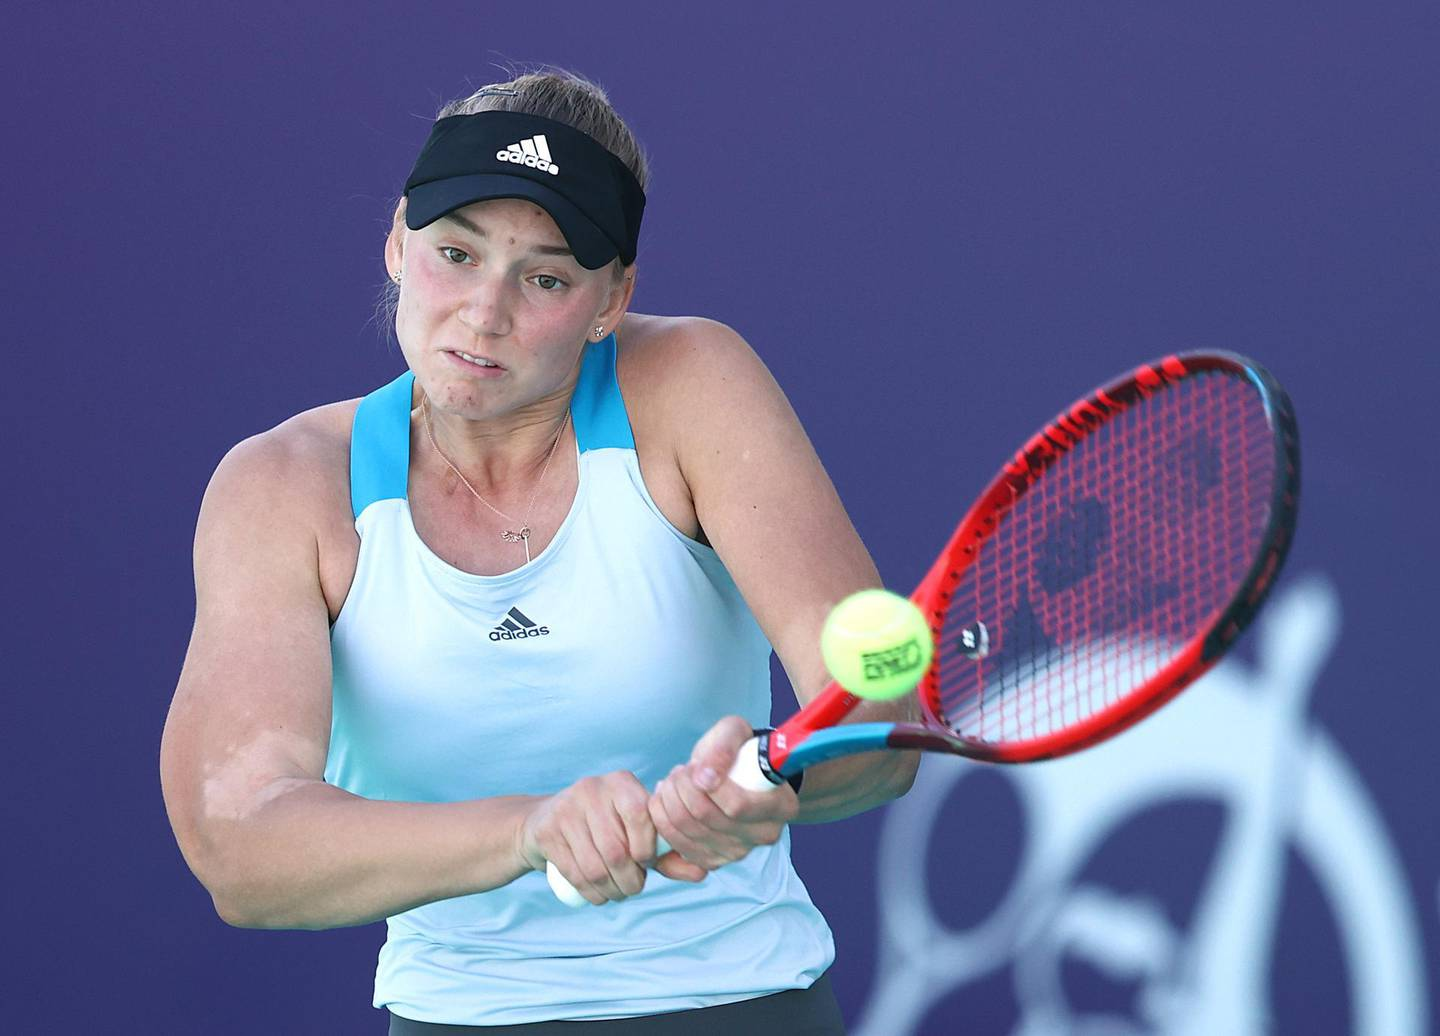 ABU DHABI, UNITED ARAB EMIRATES - JANUARY 10:  Elena Rybakina of Kazakhstan in action against Daria Kasatkina of Russia during her Women's Singles match on Day Five of the Abu Dhabi WTA Women's Tennis Open at Zayed Sports City on January 10, 2021 in Abu Dhabi, United Arab Emirates. (Photo by Francois Nel/Getty Images)